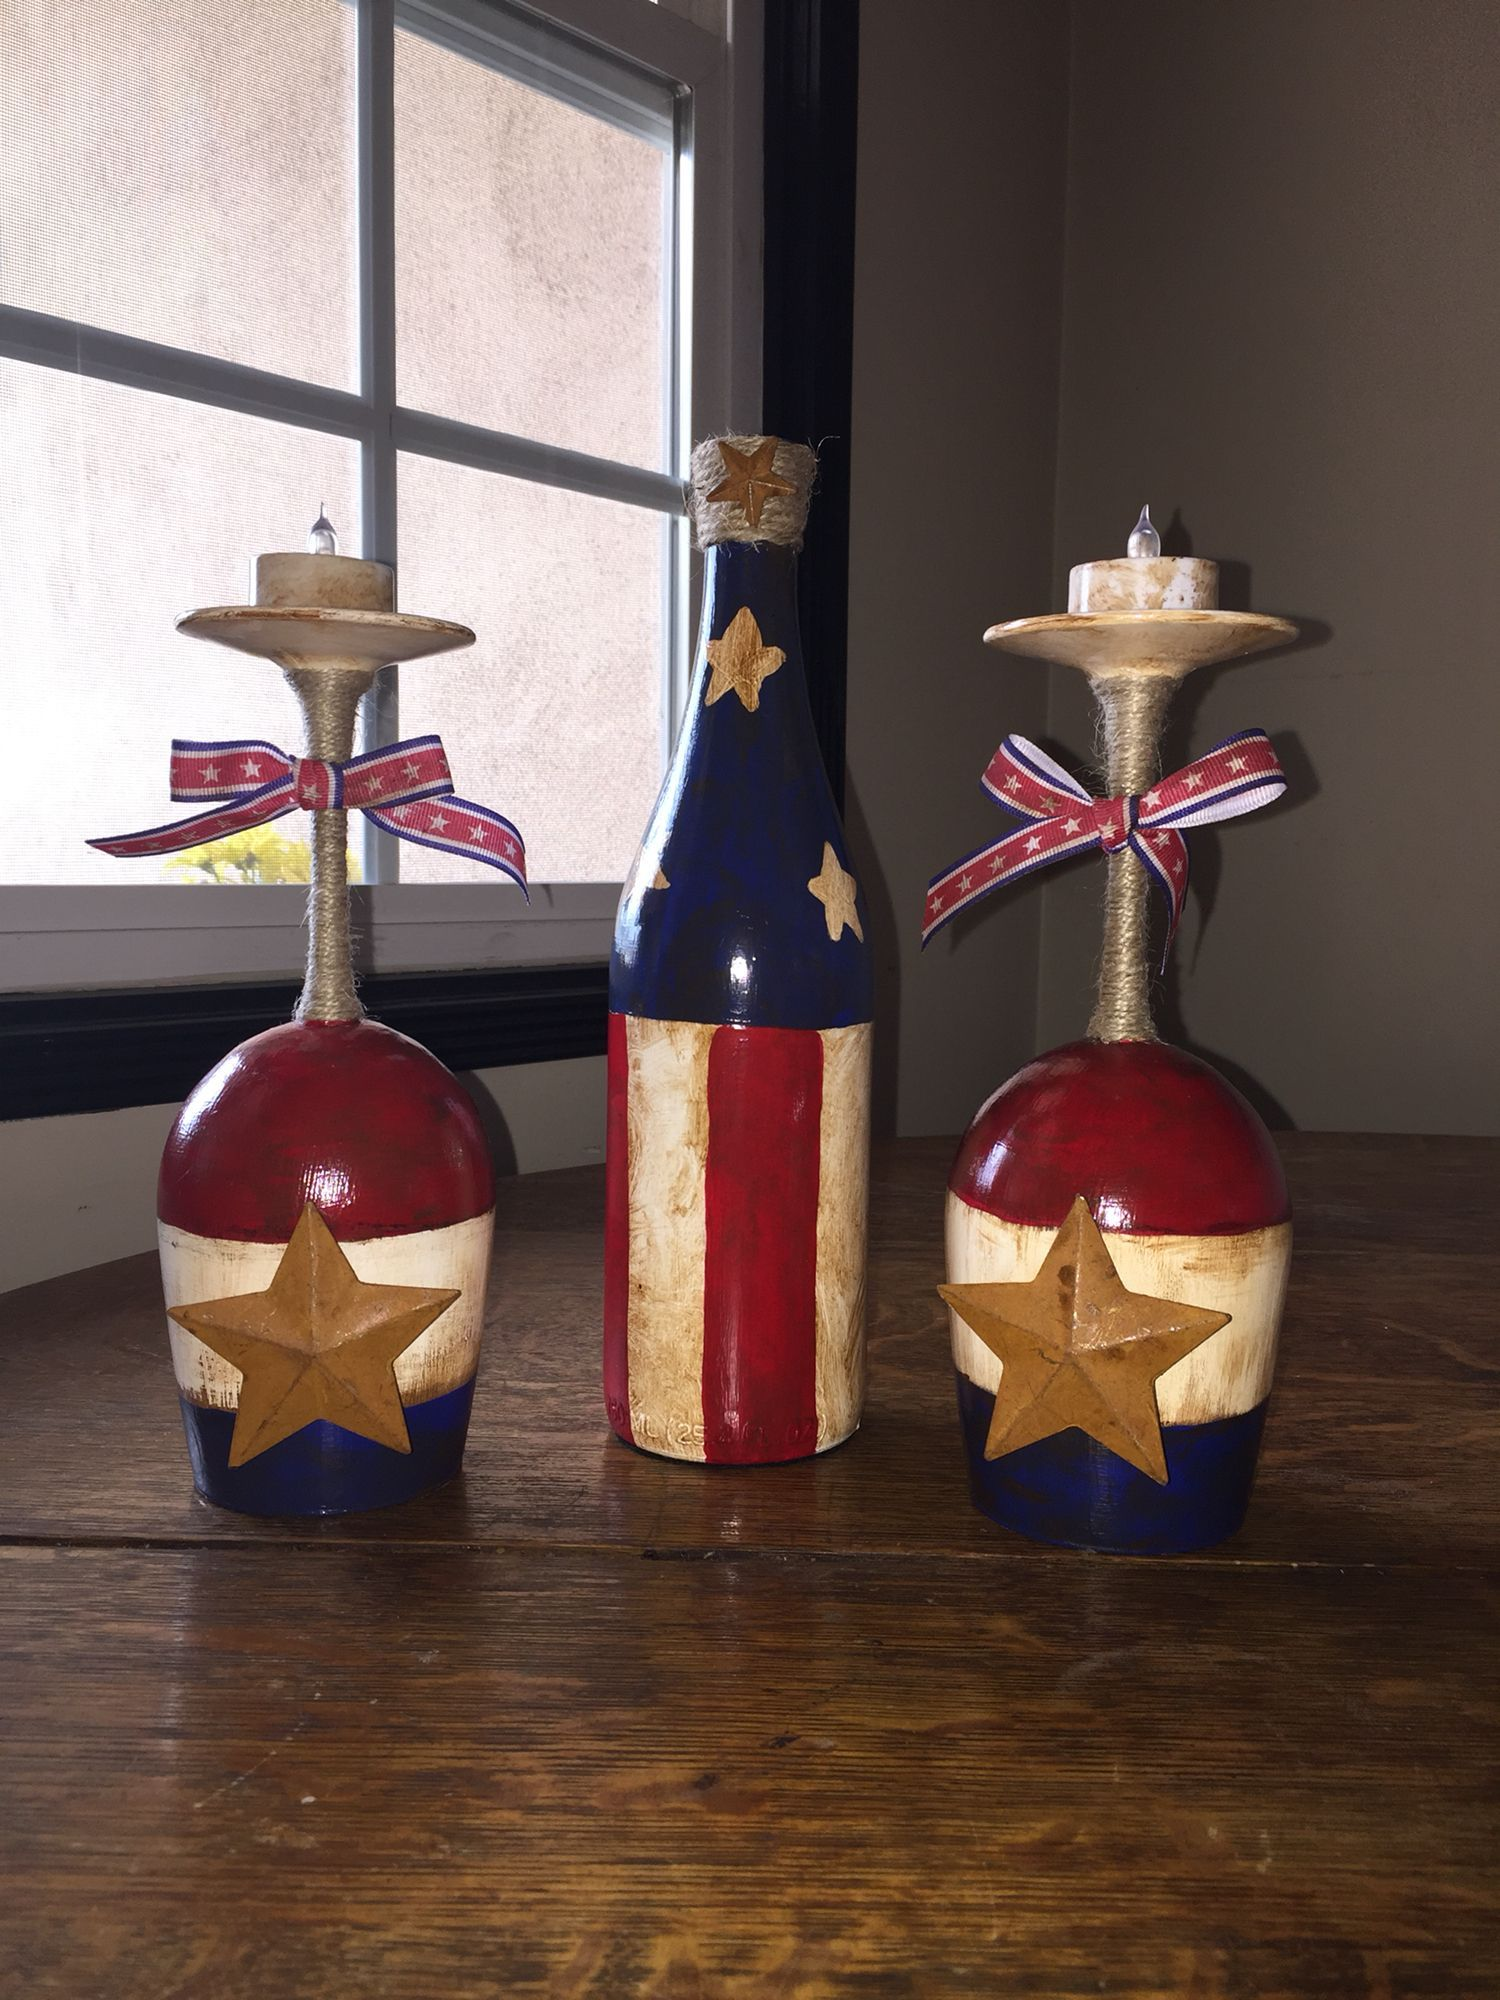 4Th Of July Decor Wine Bottles And Candle Holders